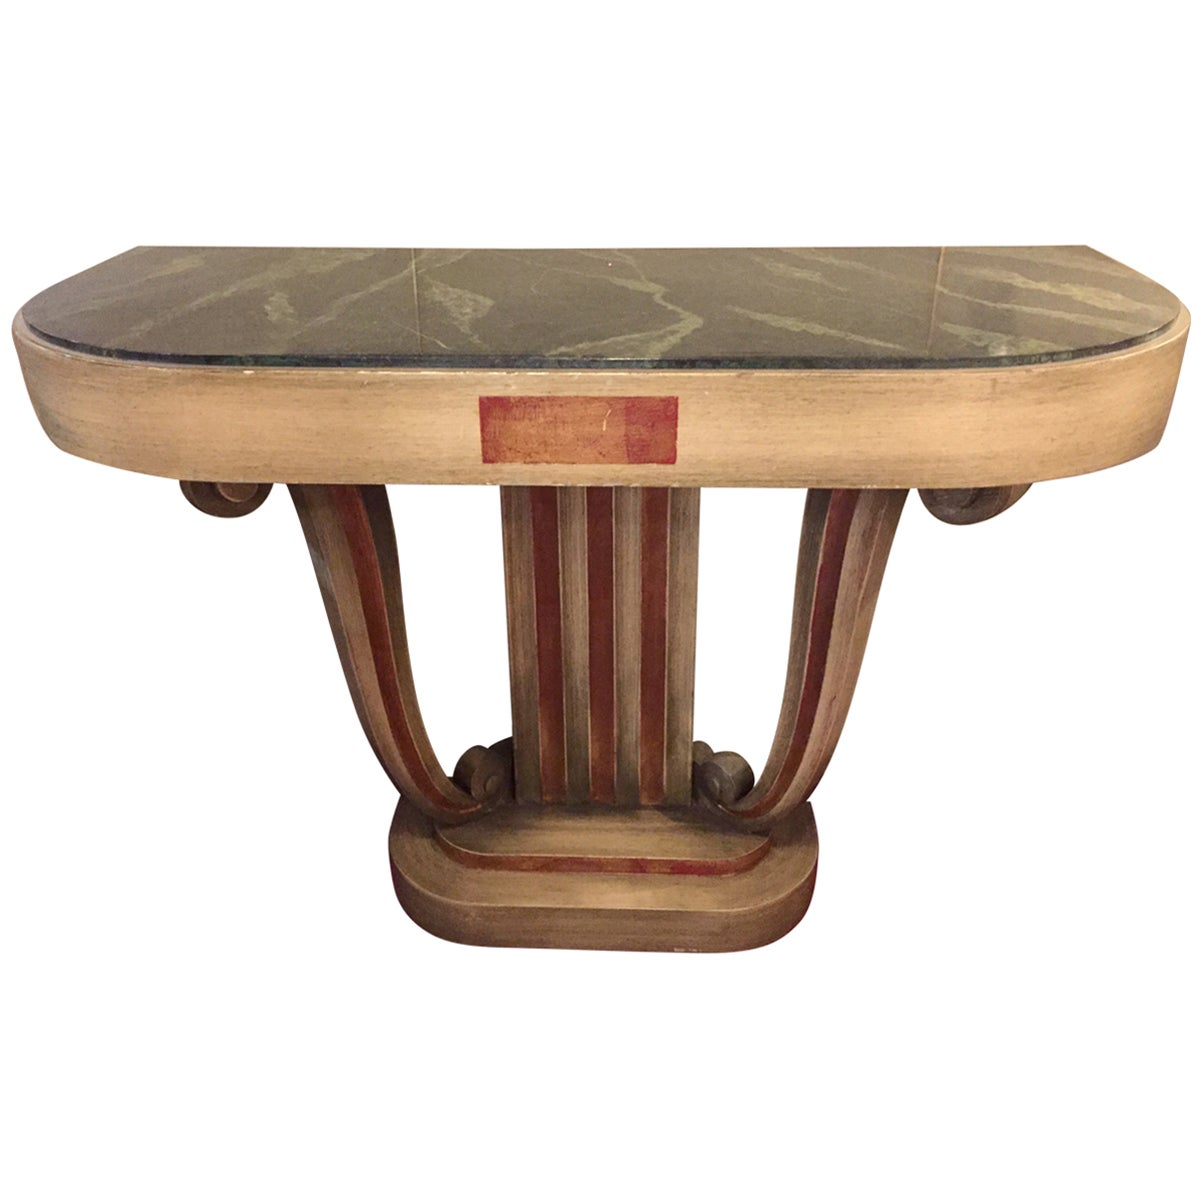 Faux Marble-Top Jansen Style Green Painted Console or Demilune